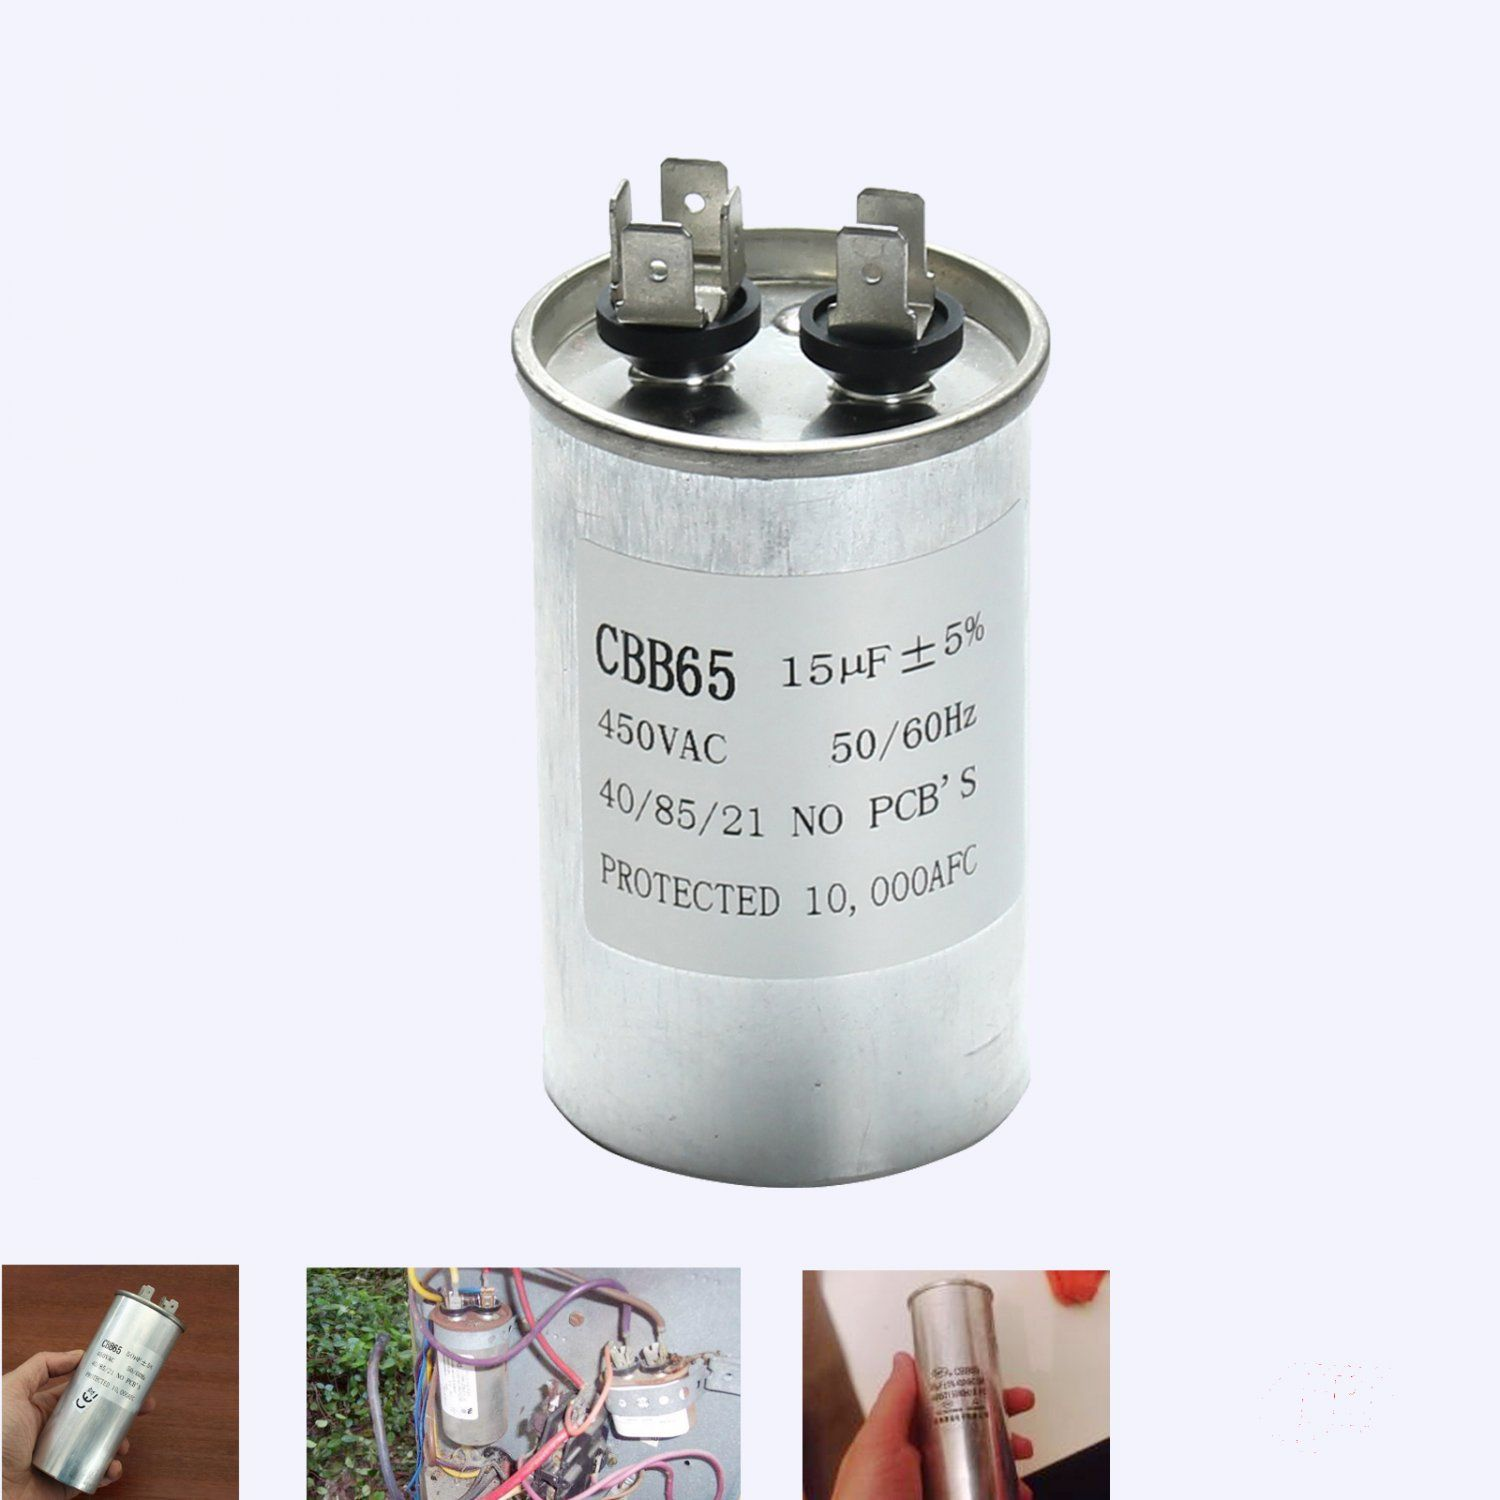 CBB65 450VAC 15uF Motor Capacitor Air Conditioner